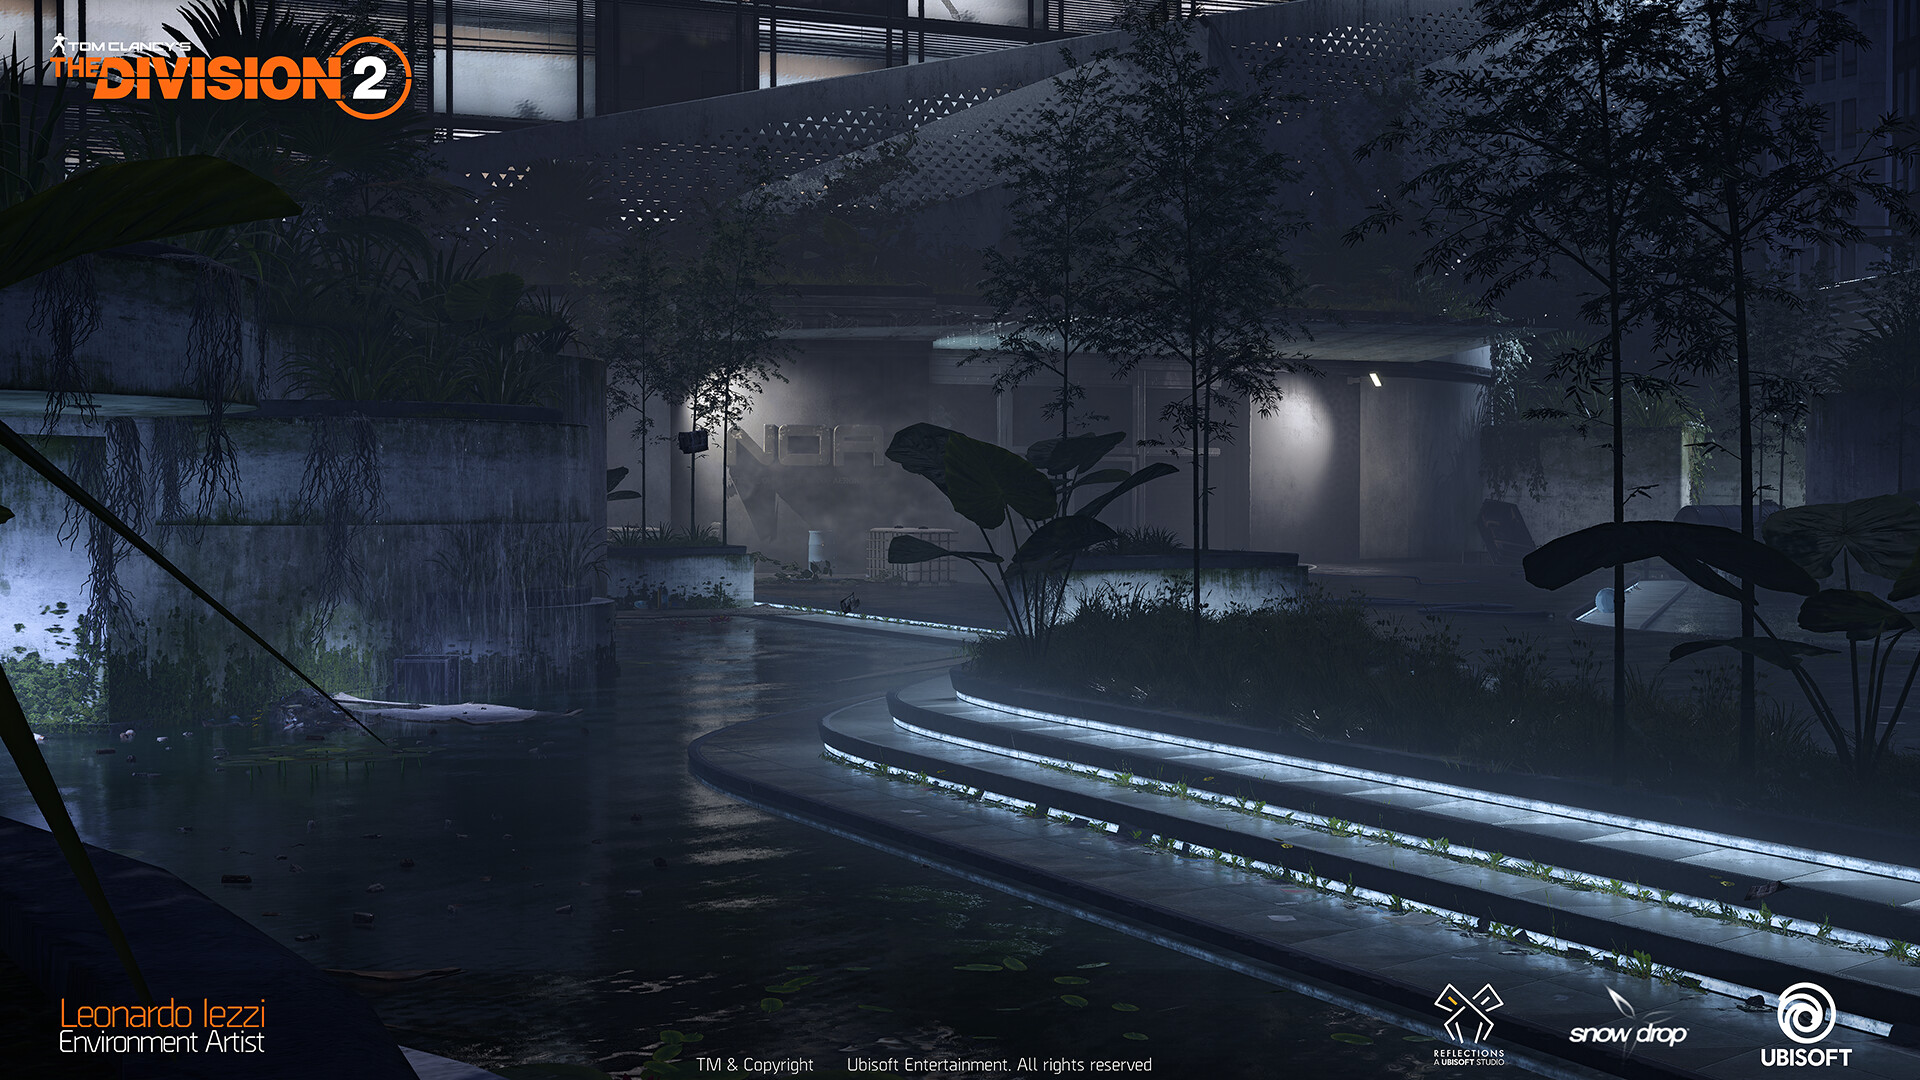 Leonardo iezzi leonardo iezzi the division 2 environment art 01 plaza 002